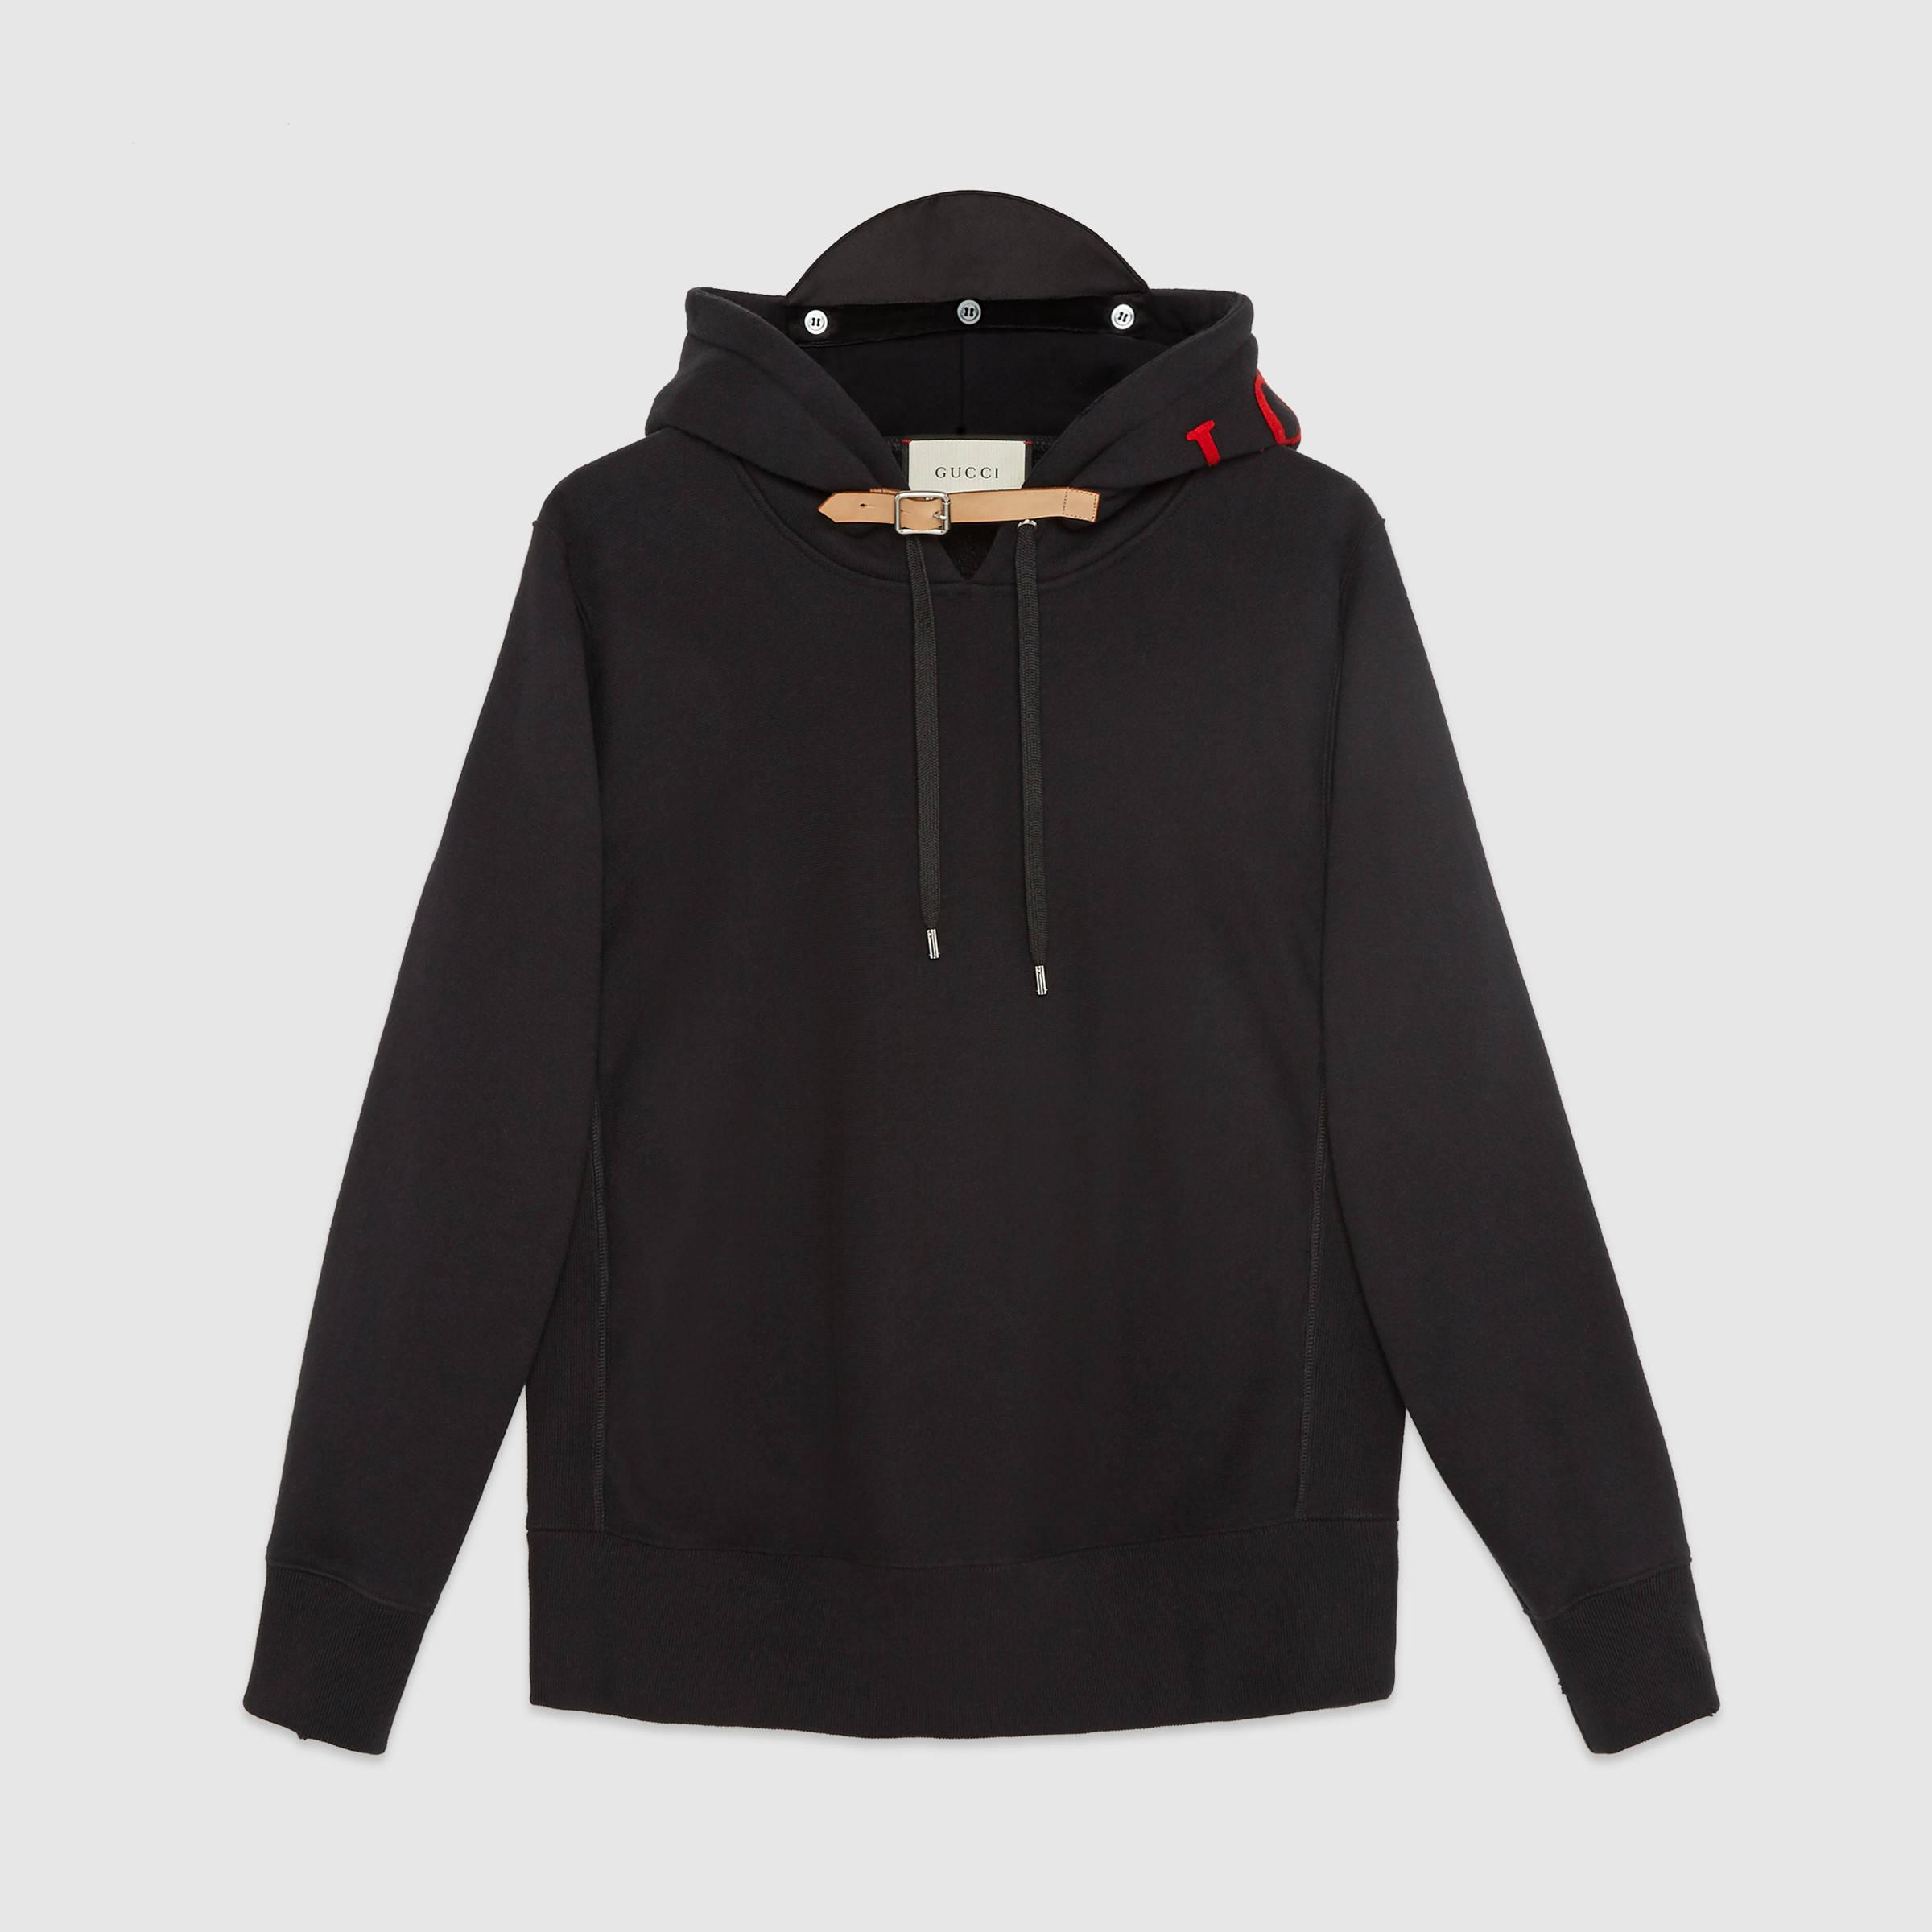 Gucci Cotton Sweatshirt With Appliqu S In Black For Men Lyst